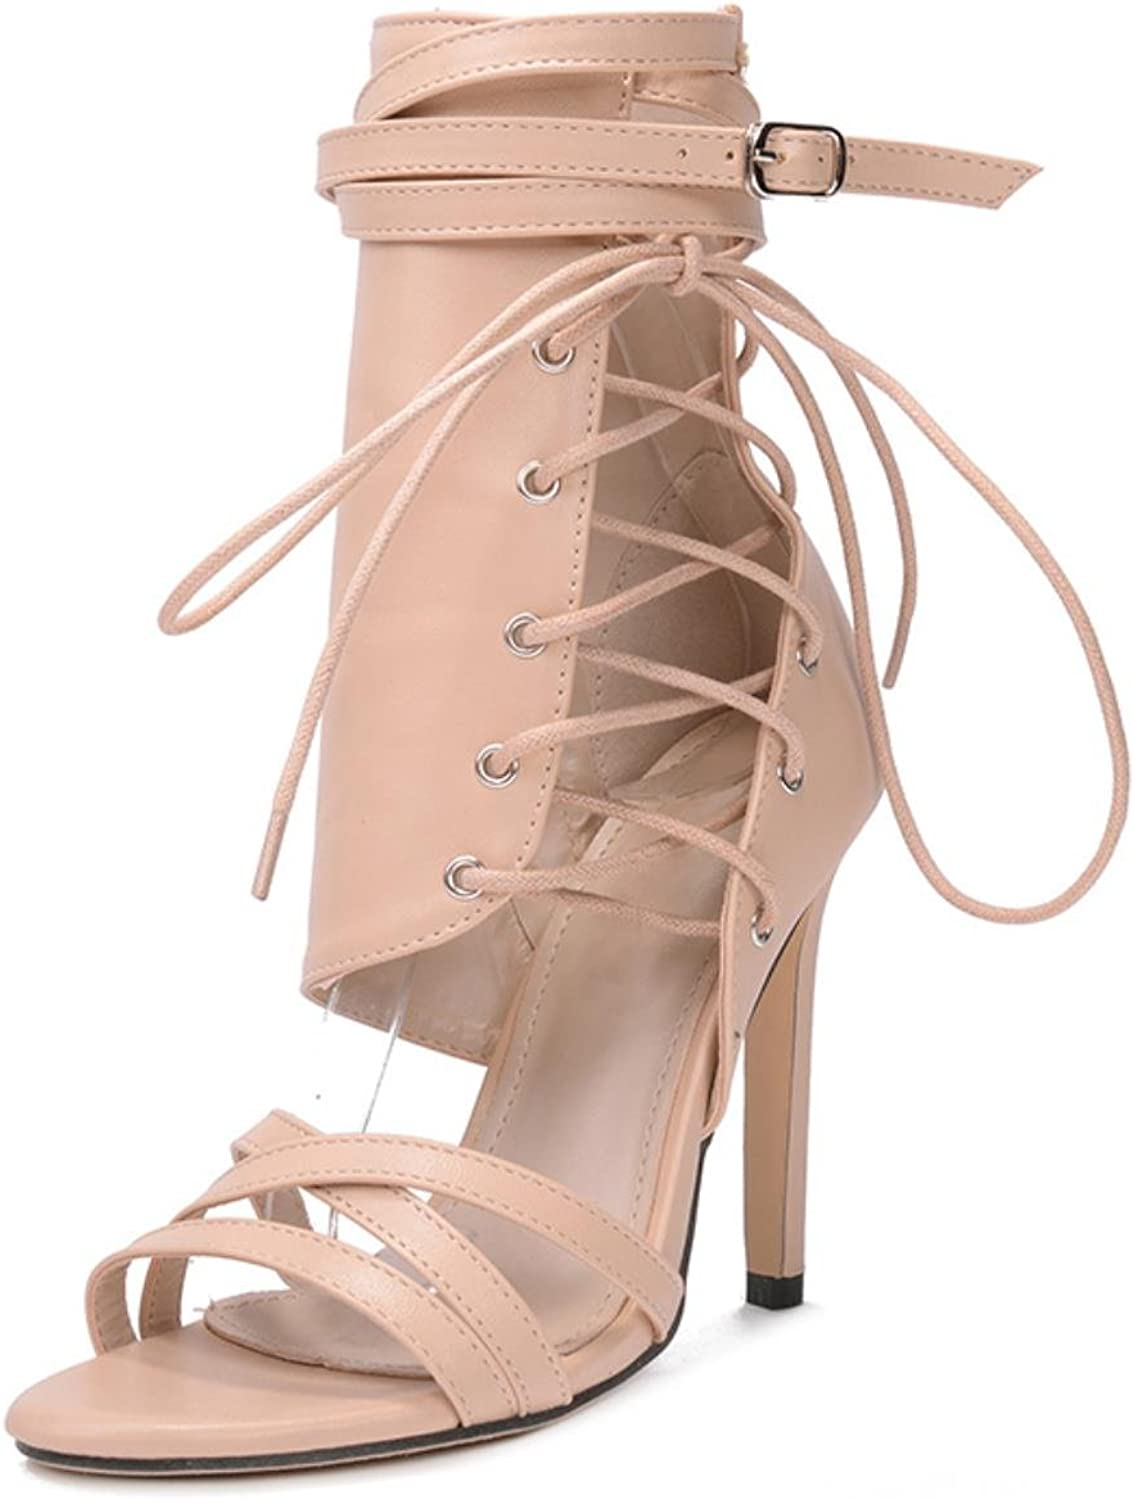 Rumbidzo Women Sandals 2018 Fashion Summer Gladiator Sandals Woman shoes Lace Up Ankle Strap High Heels Party shoes Sapatos